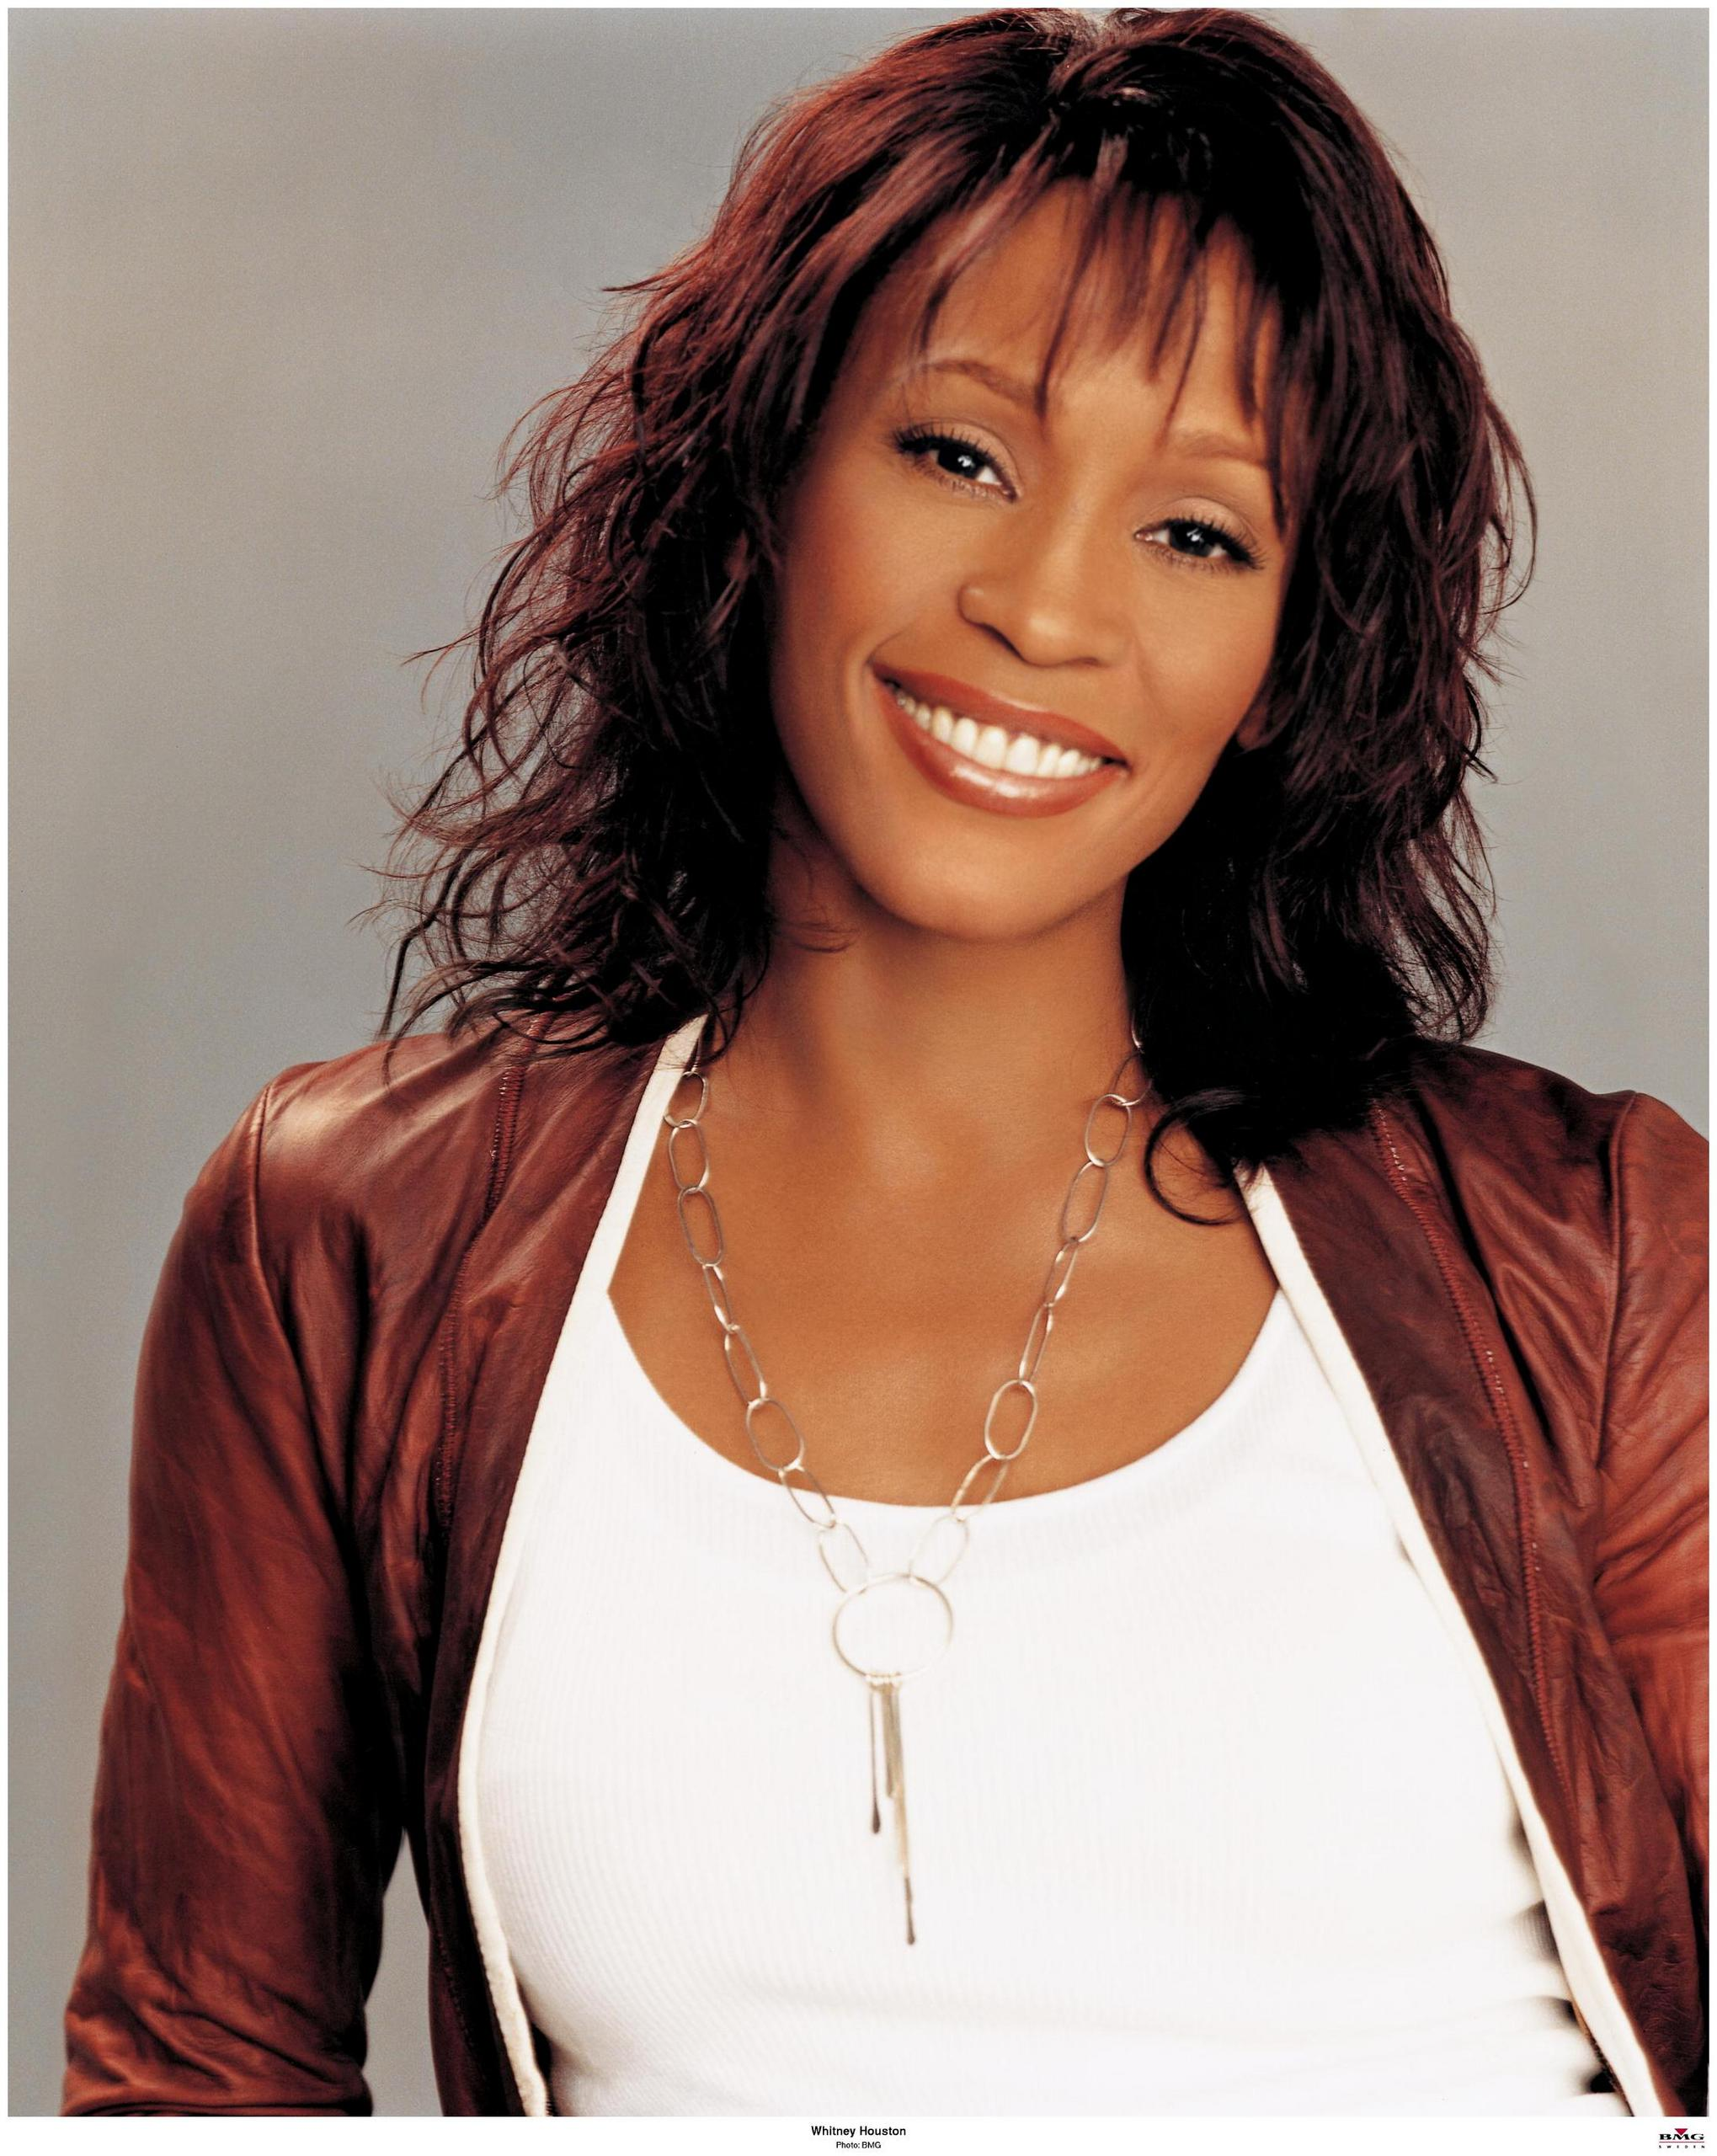 Whitney Houston - Whitney Houston Photo (29203741) - Fanpop